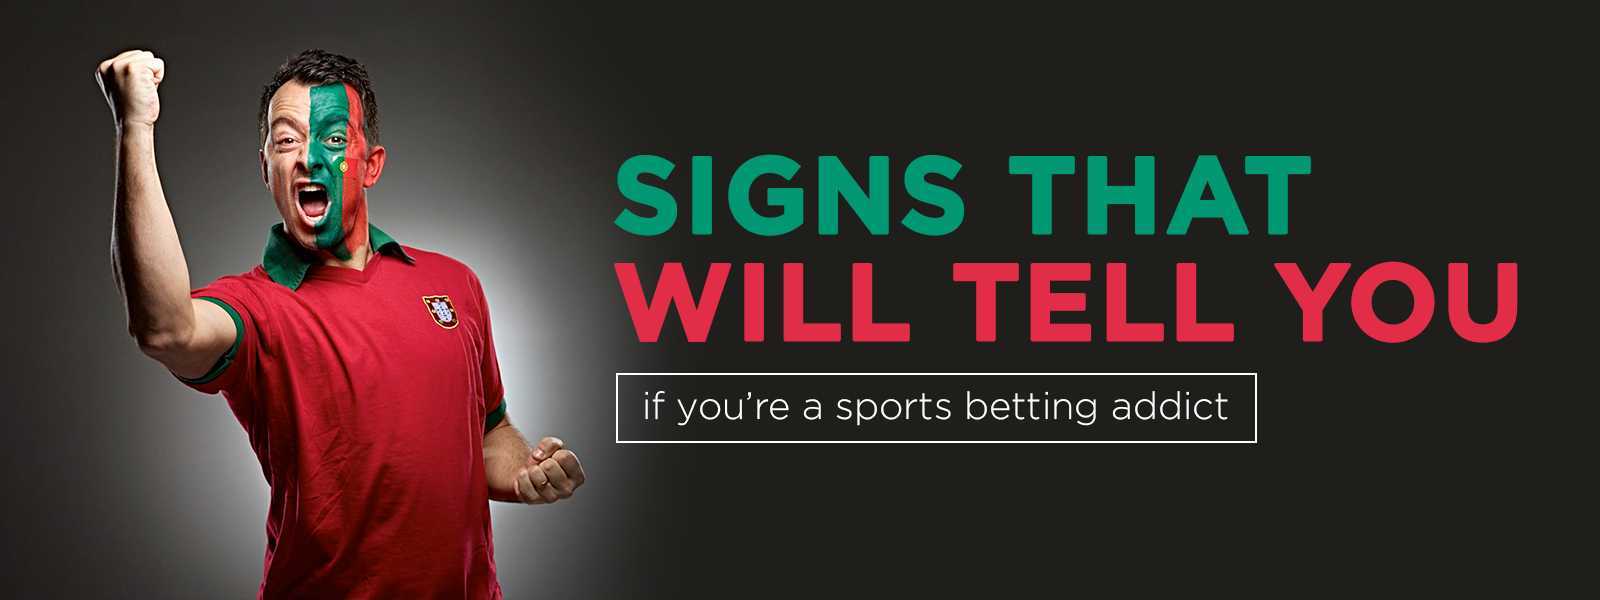 Signs That Will Tell You If You're A Sports Betting Addict